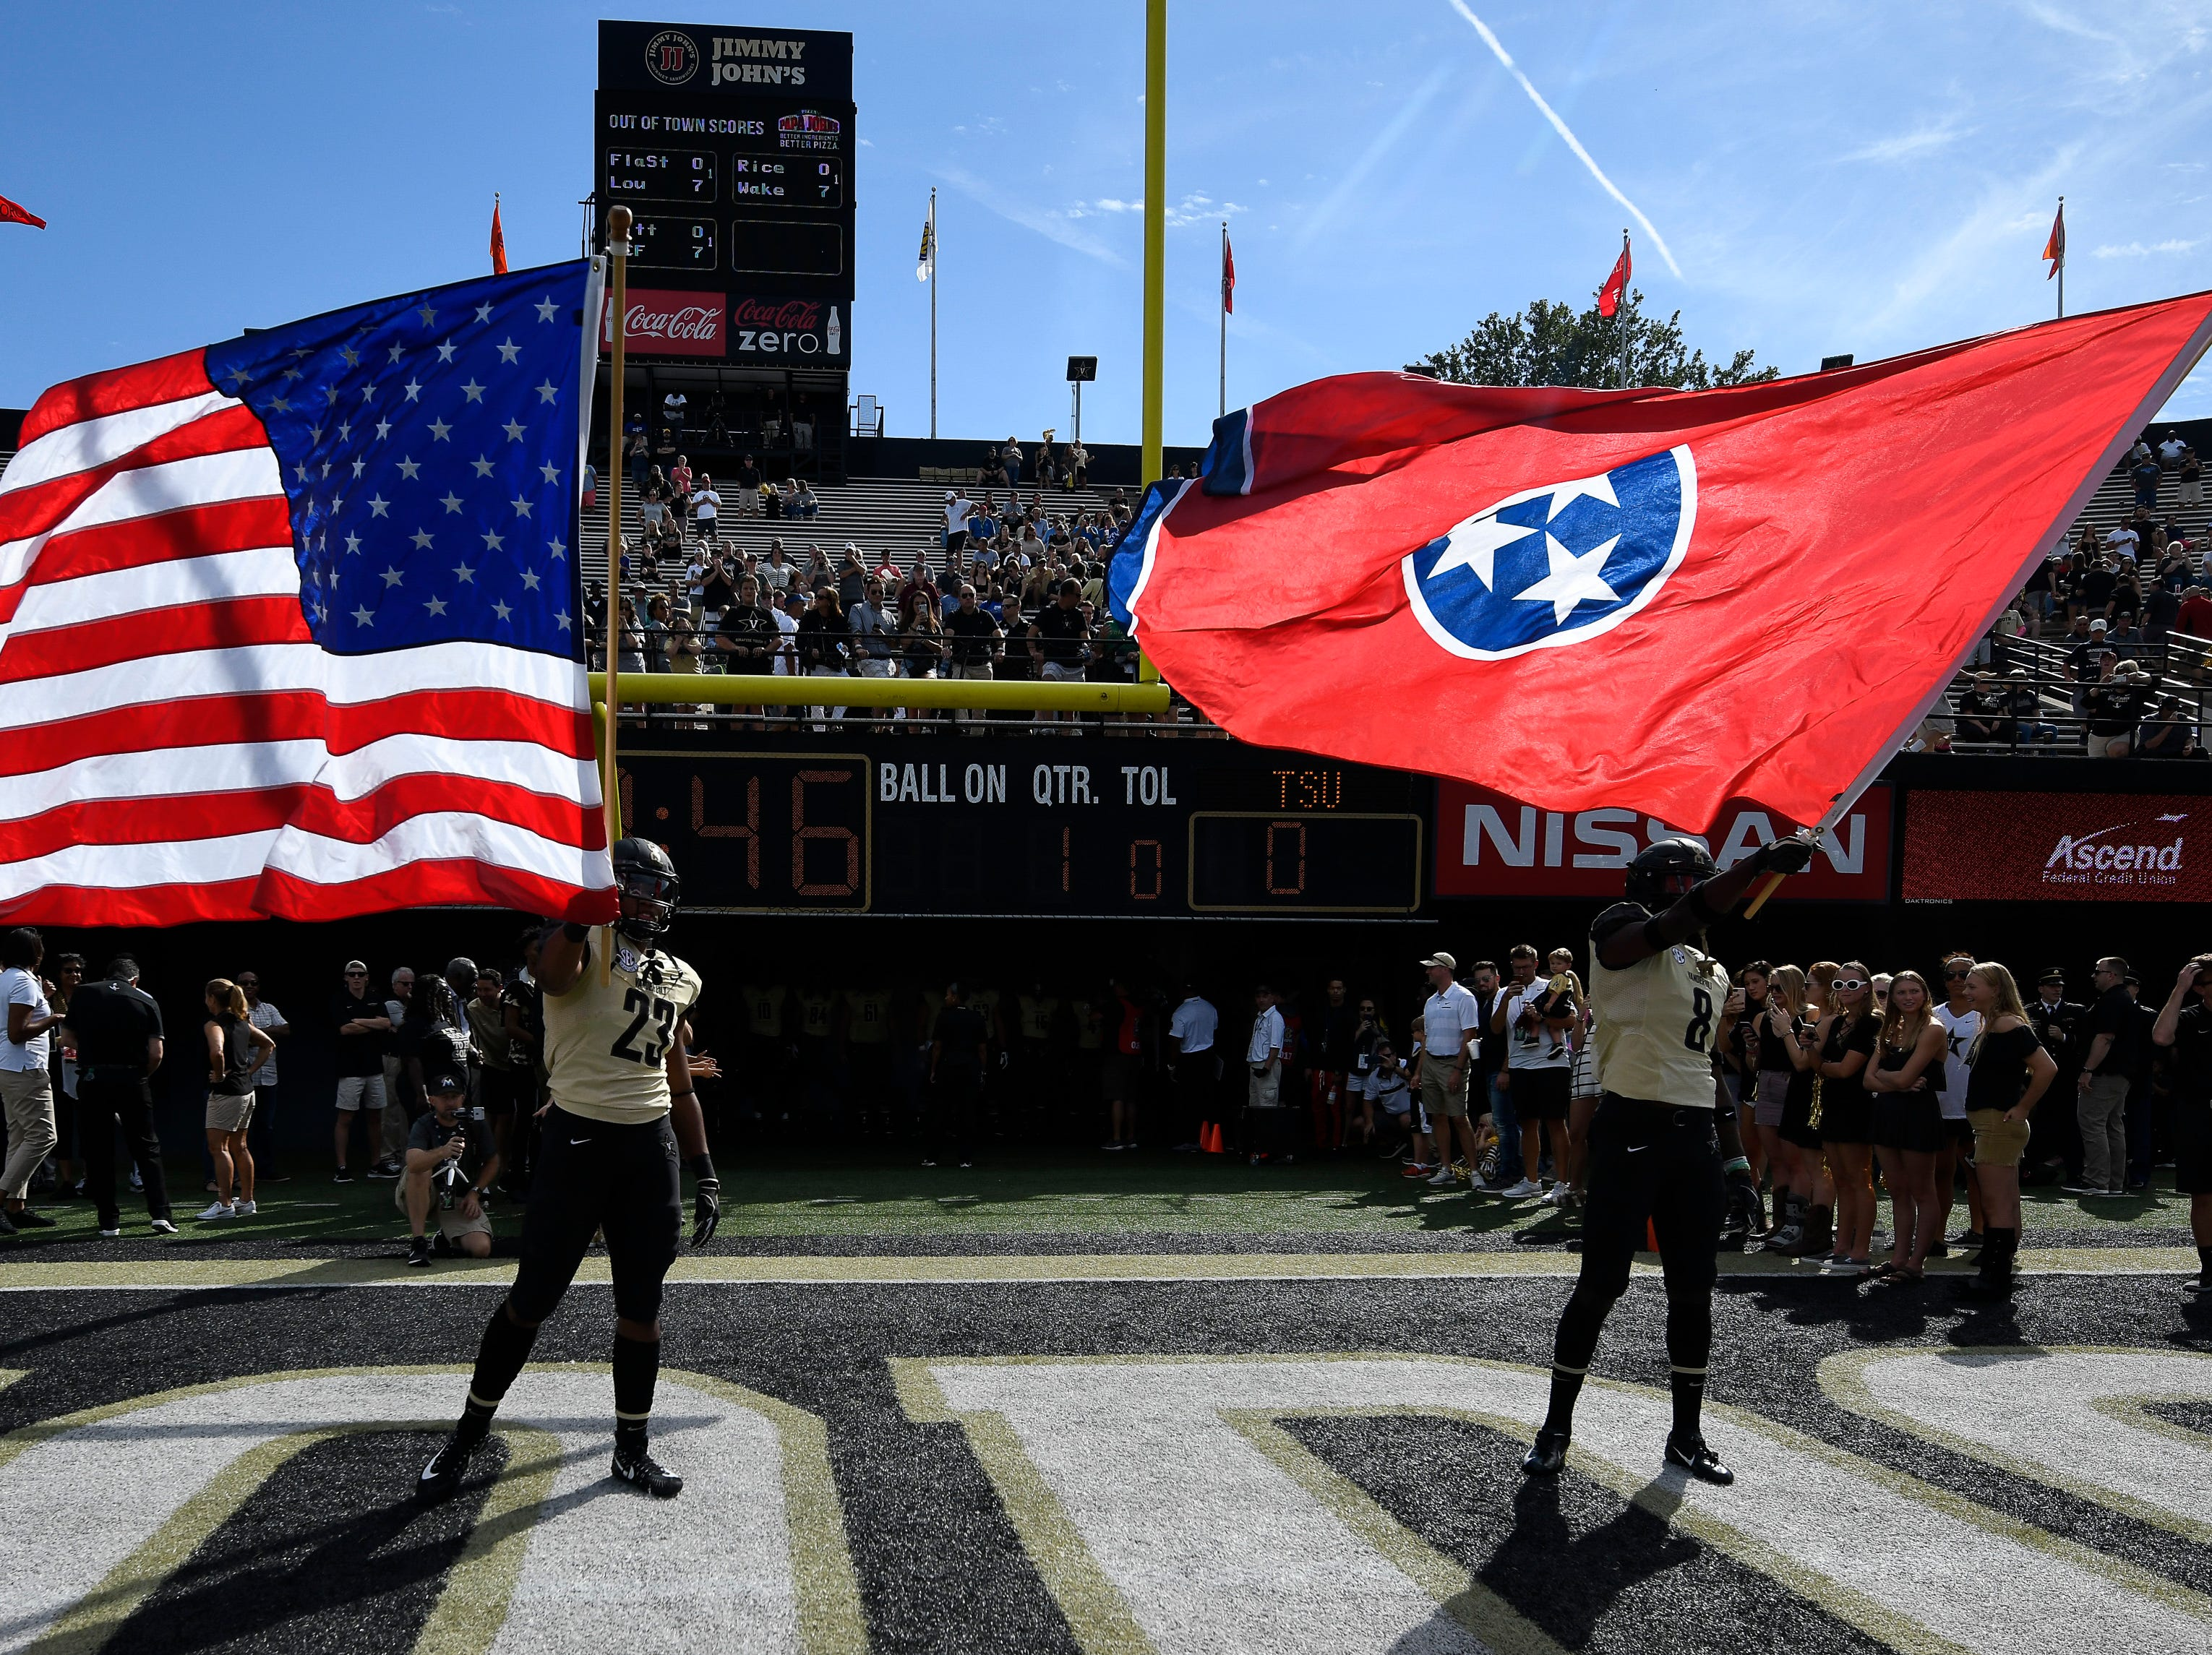 Vanderbilt running back Khari Blasingame (23) and cornerback Joejuan Williams (8) wave the flags before they take the field for their game against TSU at Vanderbilt Stadium Saturday, Sept. 29, 2018, in Nashville, Tenn.